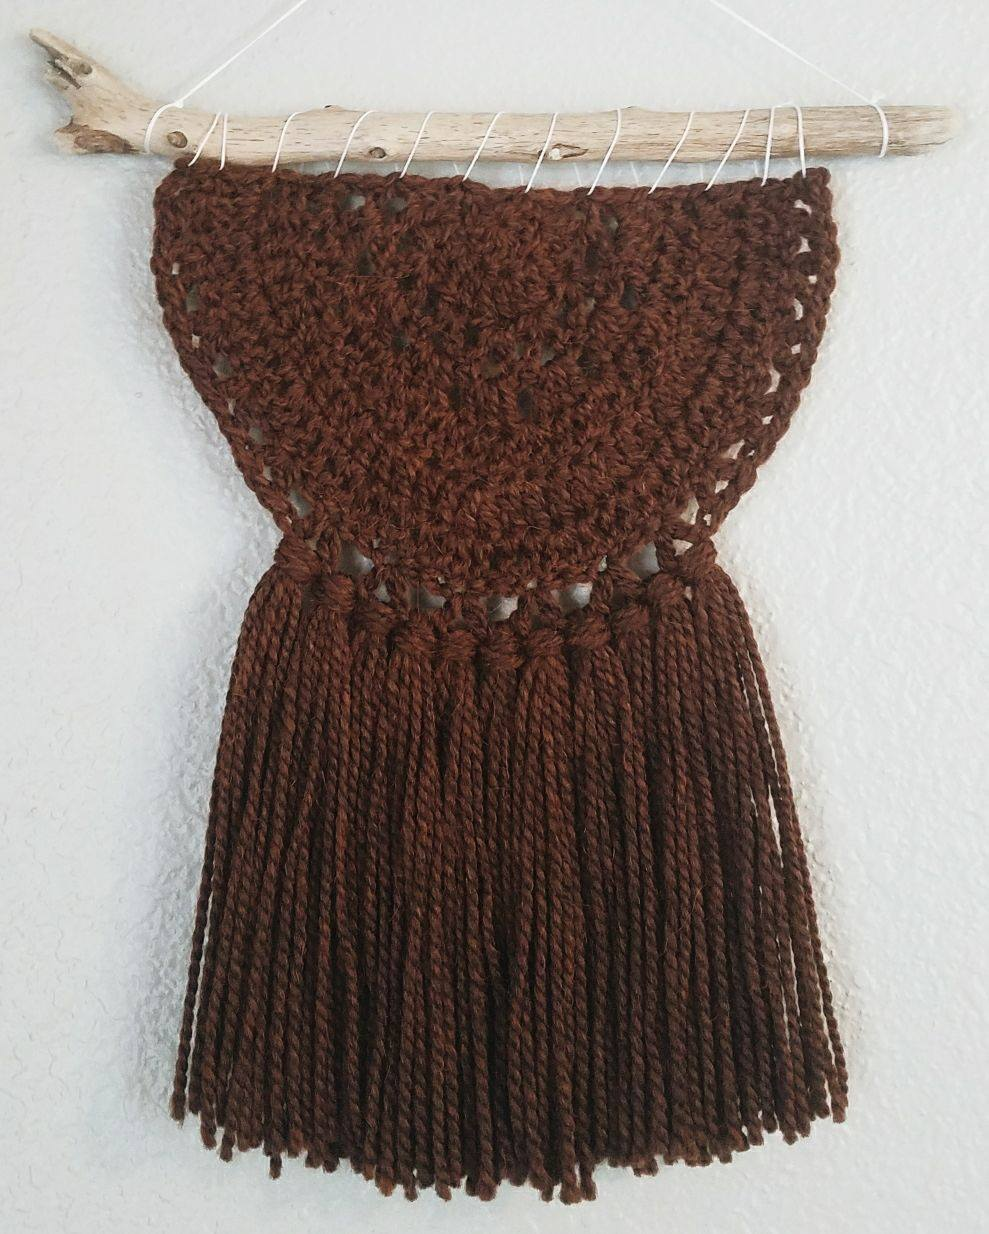 Chimbota Wall Hanging - The Homely Alpaca